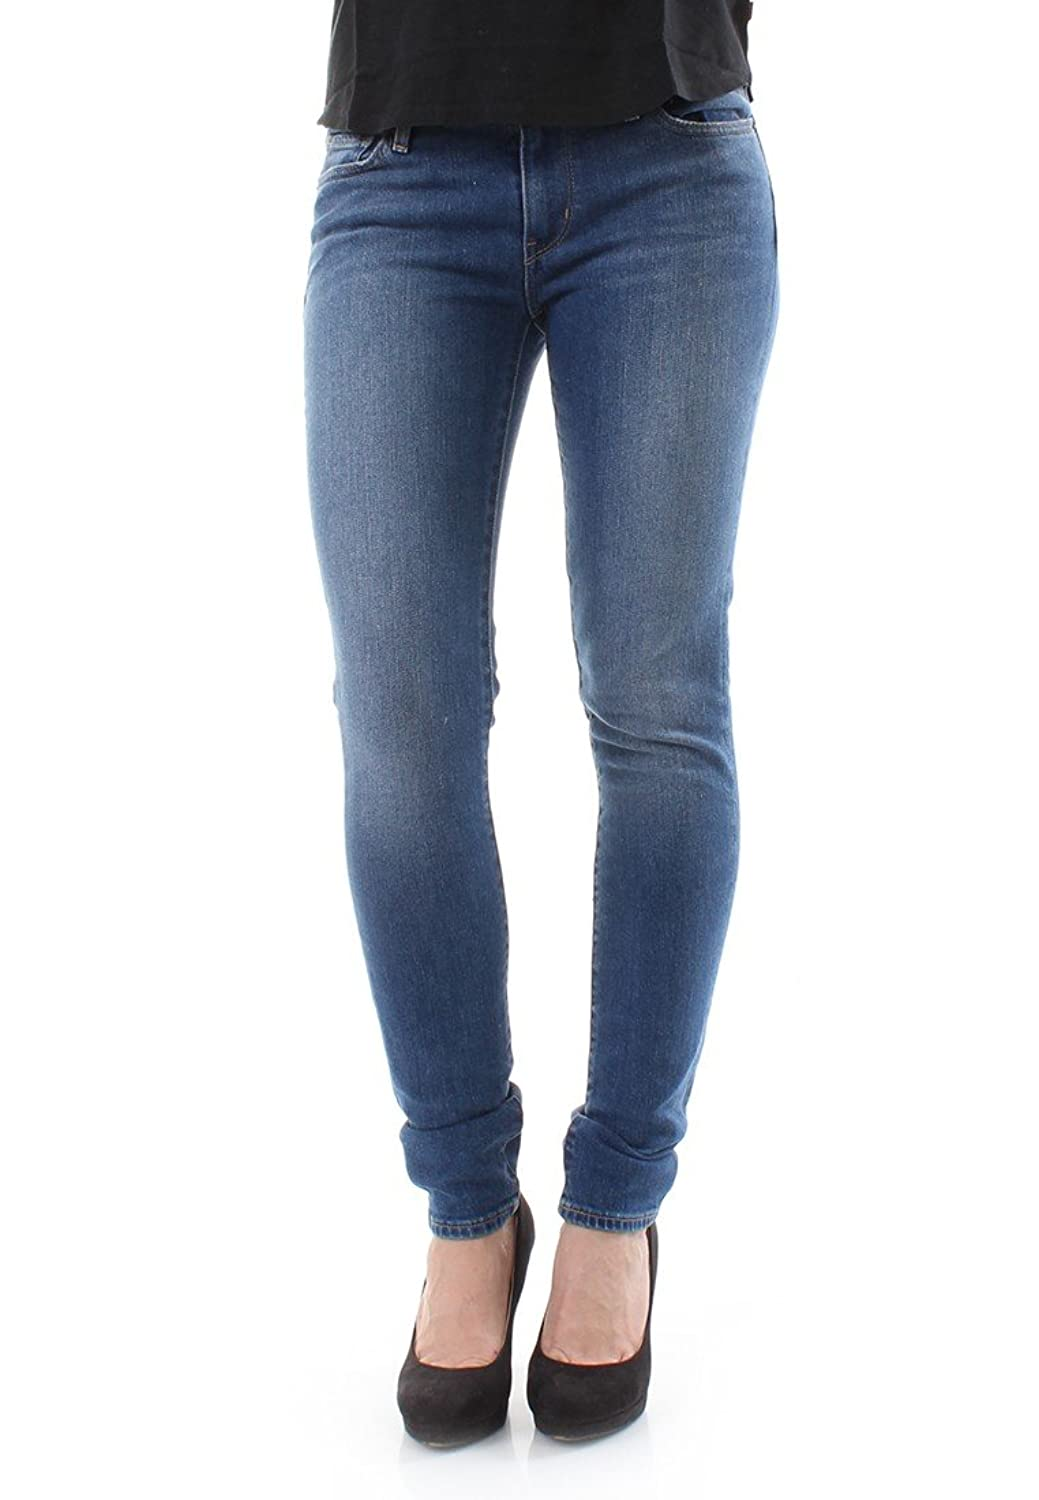 Levis Jeans Women 711 SKINNY 18881-0135 Pale Night